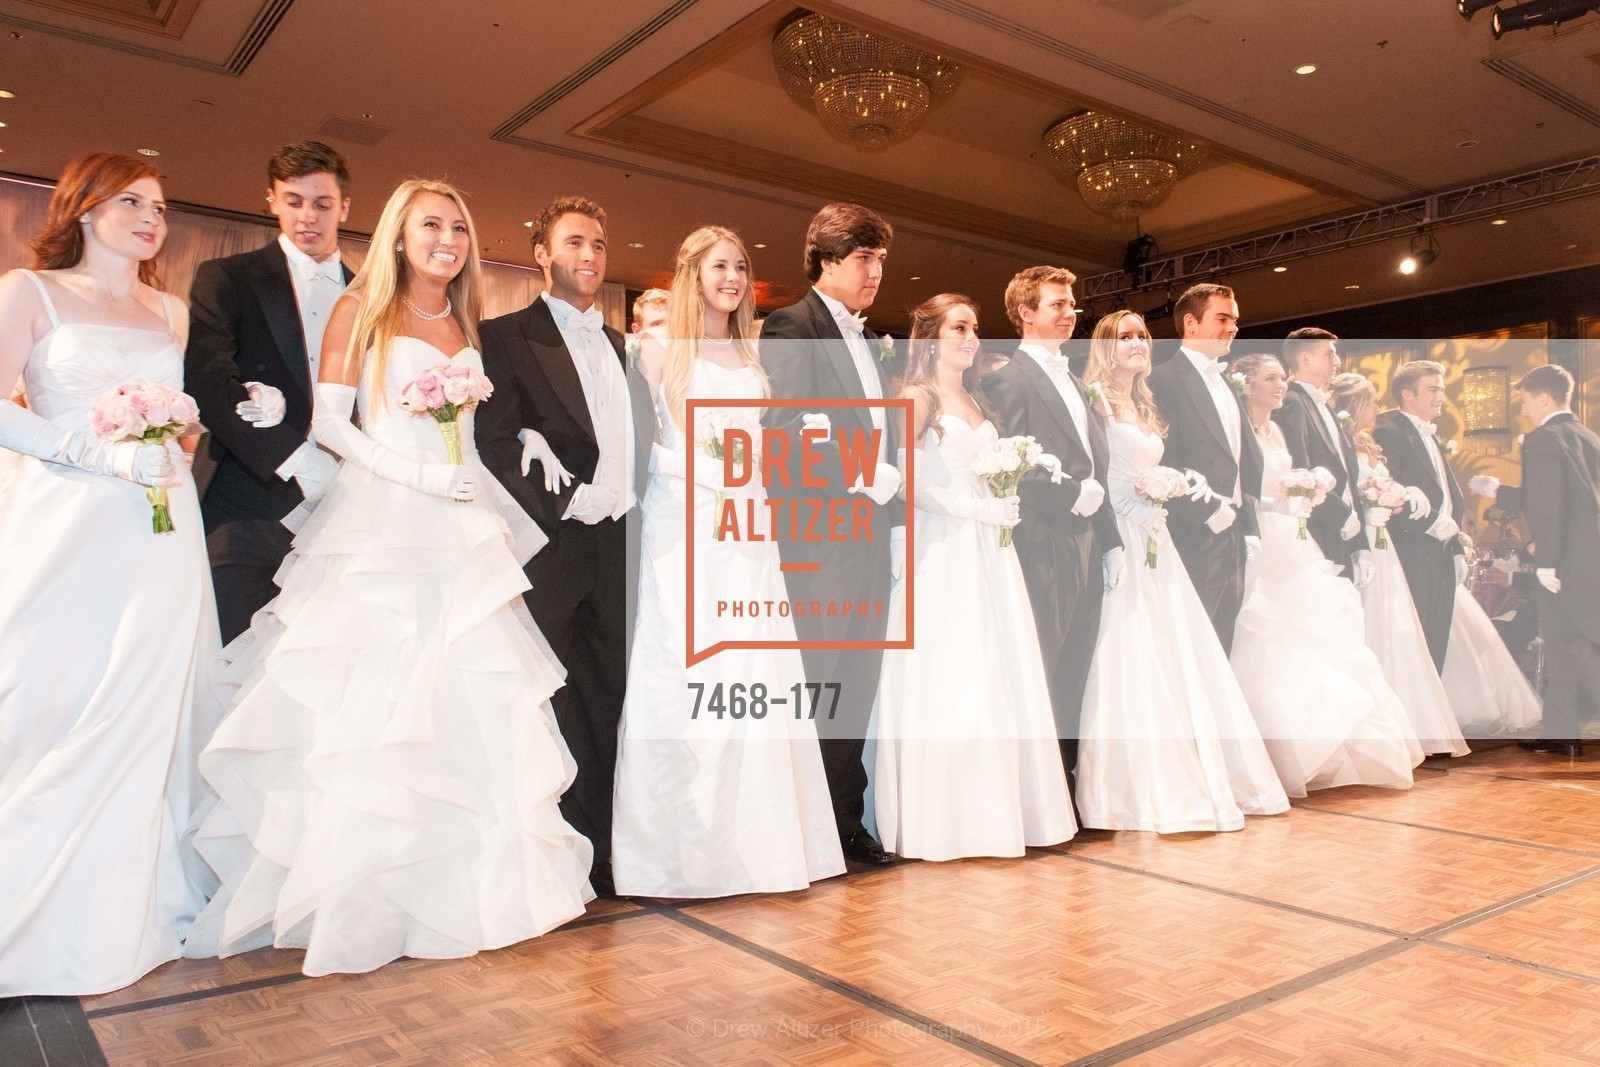 Extras, The 2015 San Francisco Debutante Ball, June 20th, 2015, Photo